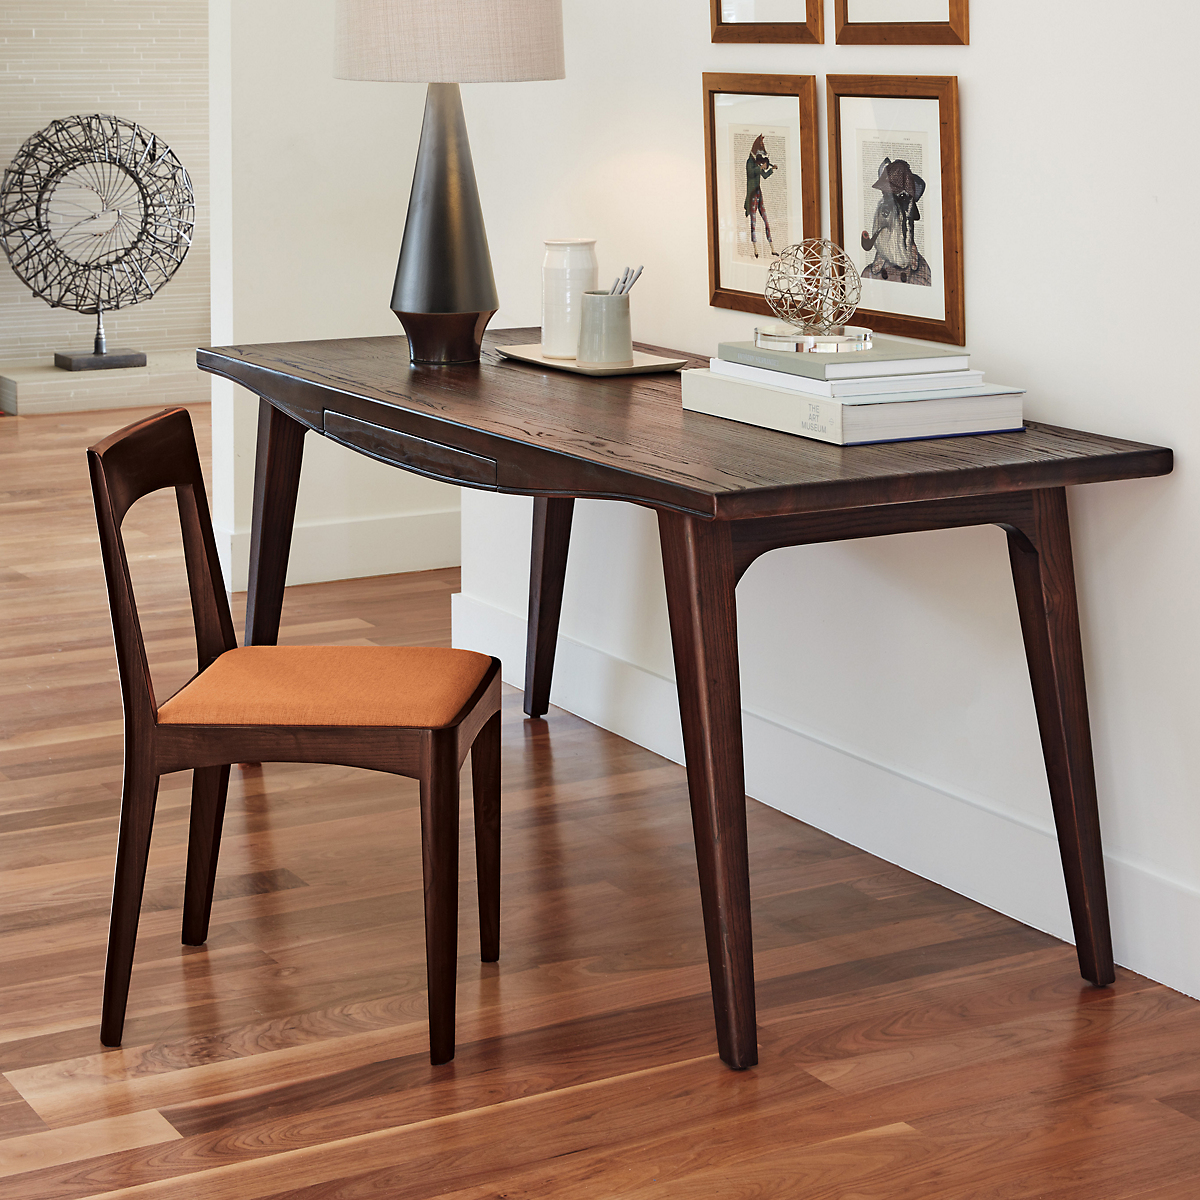 Maria Yee Merced Desk & Chair